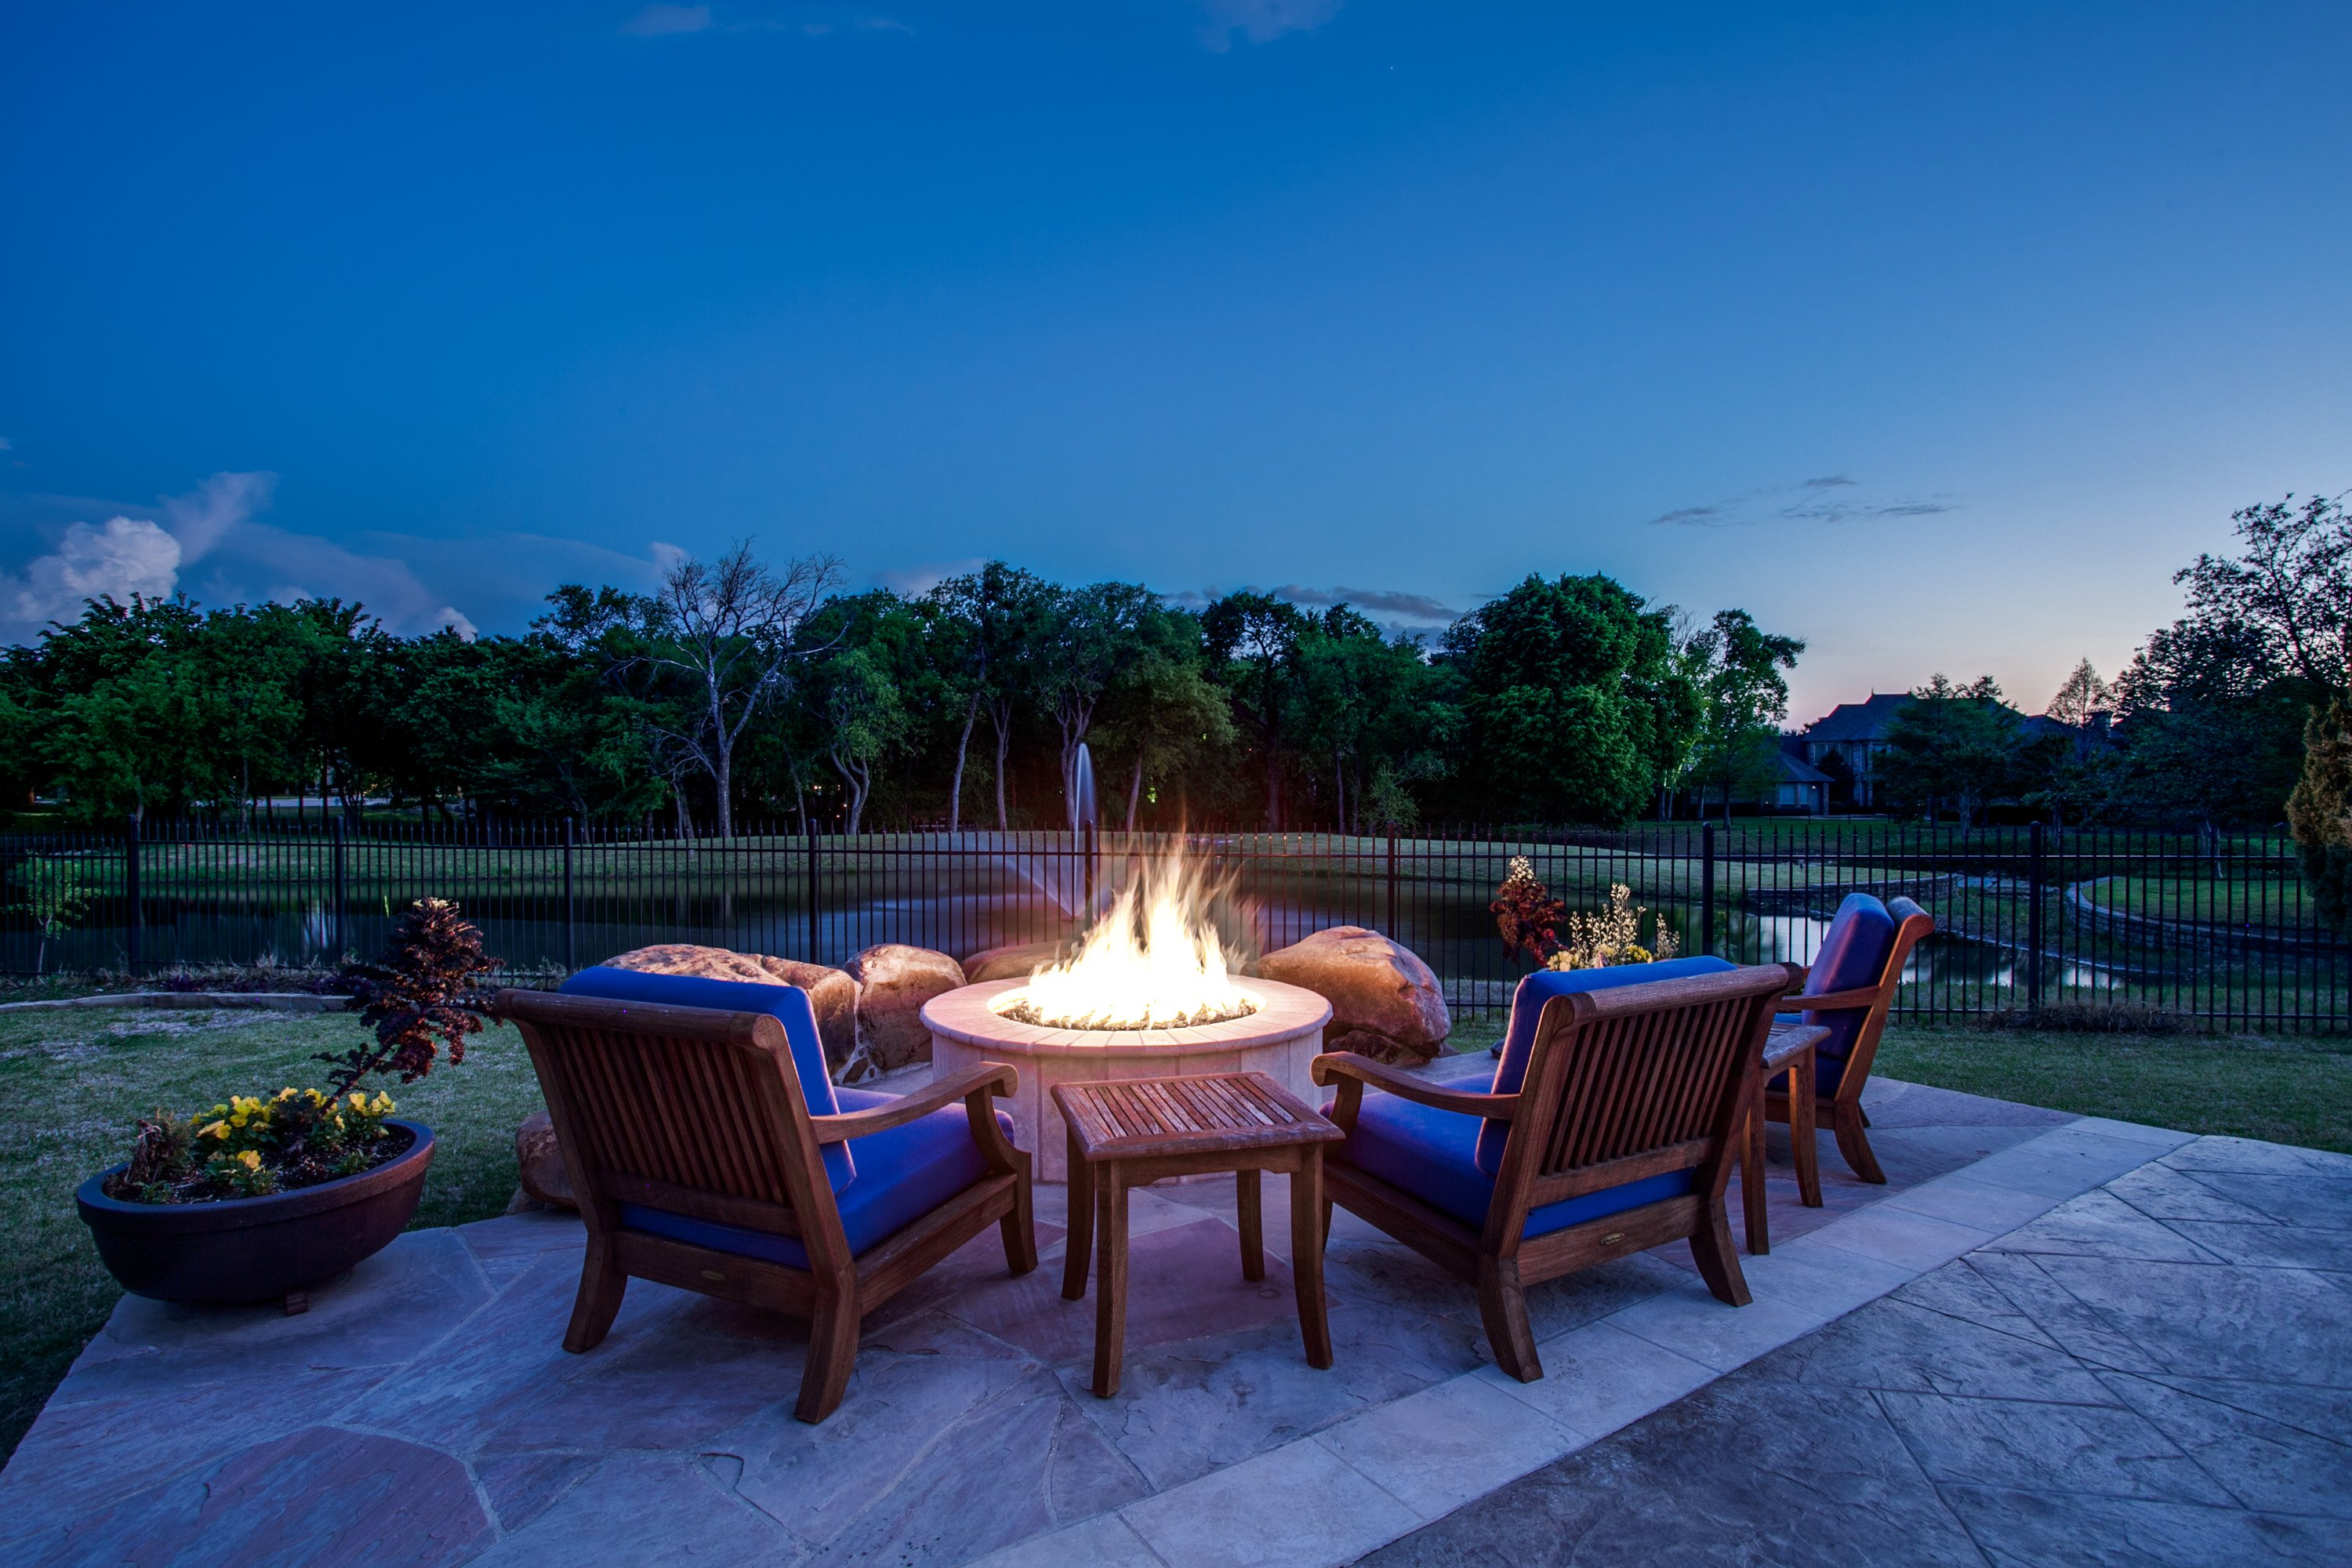 4 DIY Fire Pits for Spring Nights